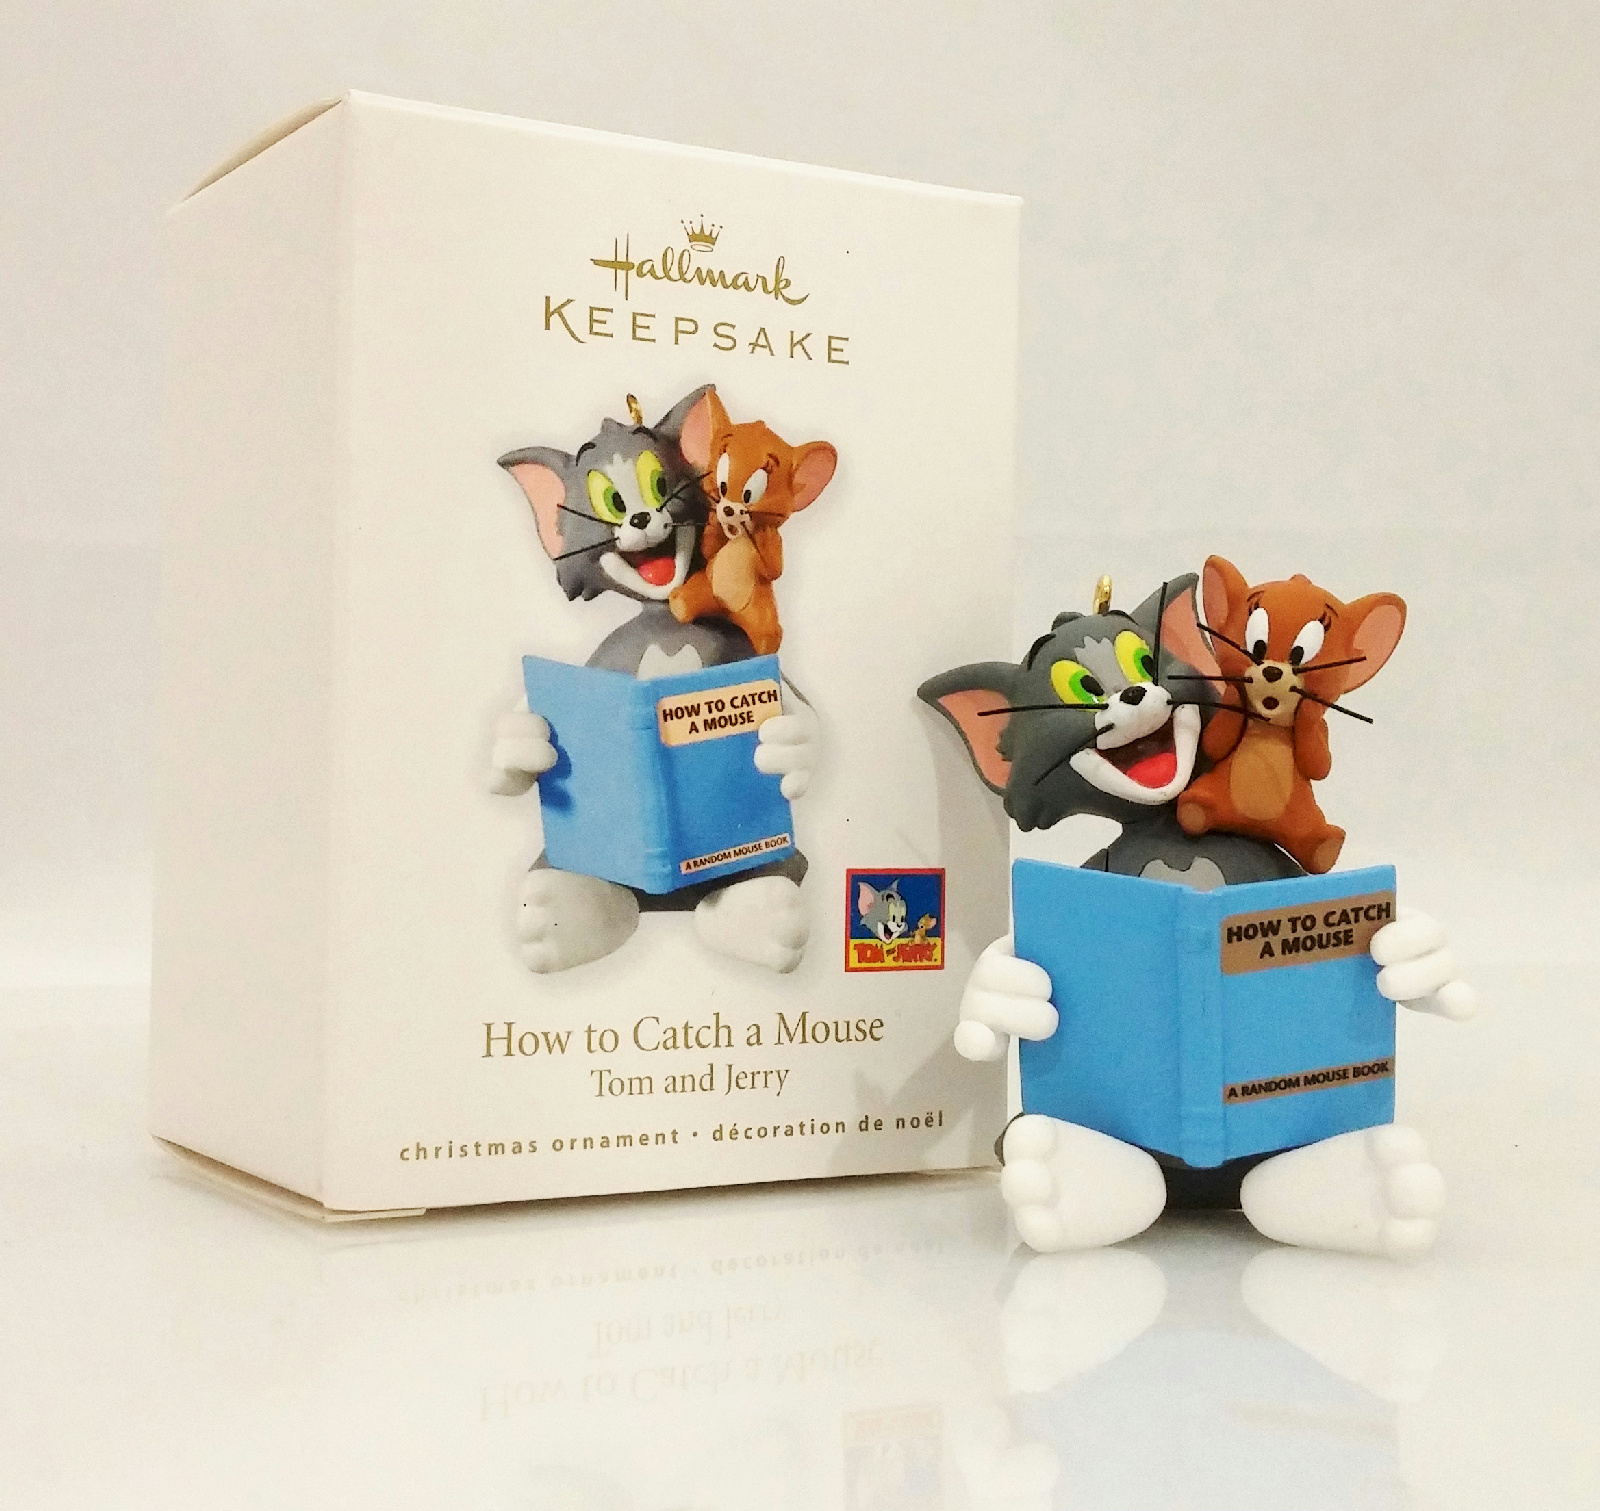 hallmark keepsake ornament 2010 how to catch a mouse tom and jerry qxi2143 ebay. Black Bedroom Furniture Sets. Home Design Ideas